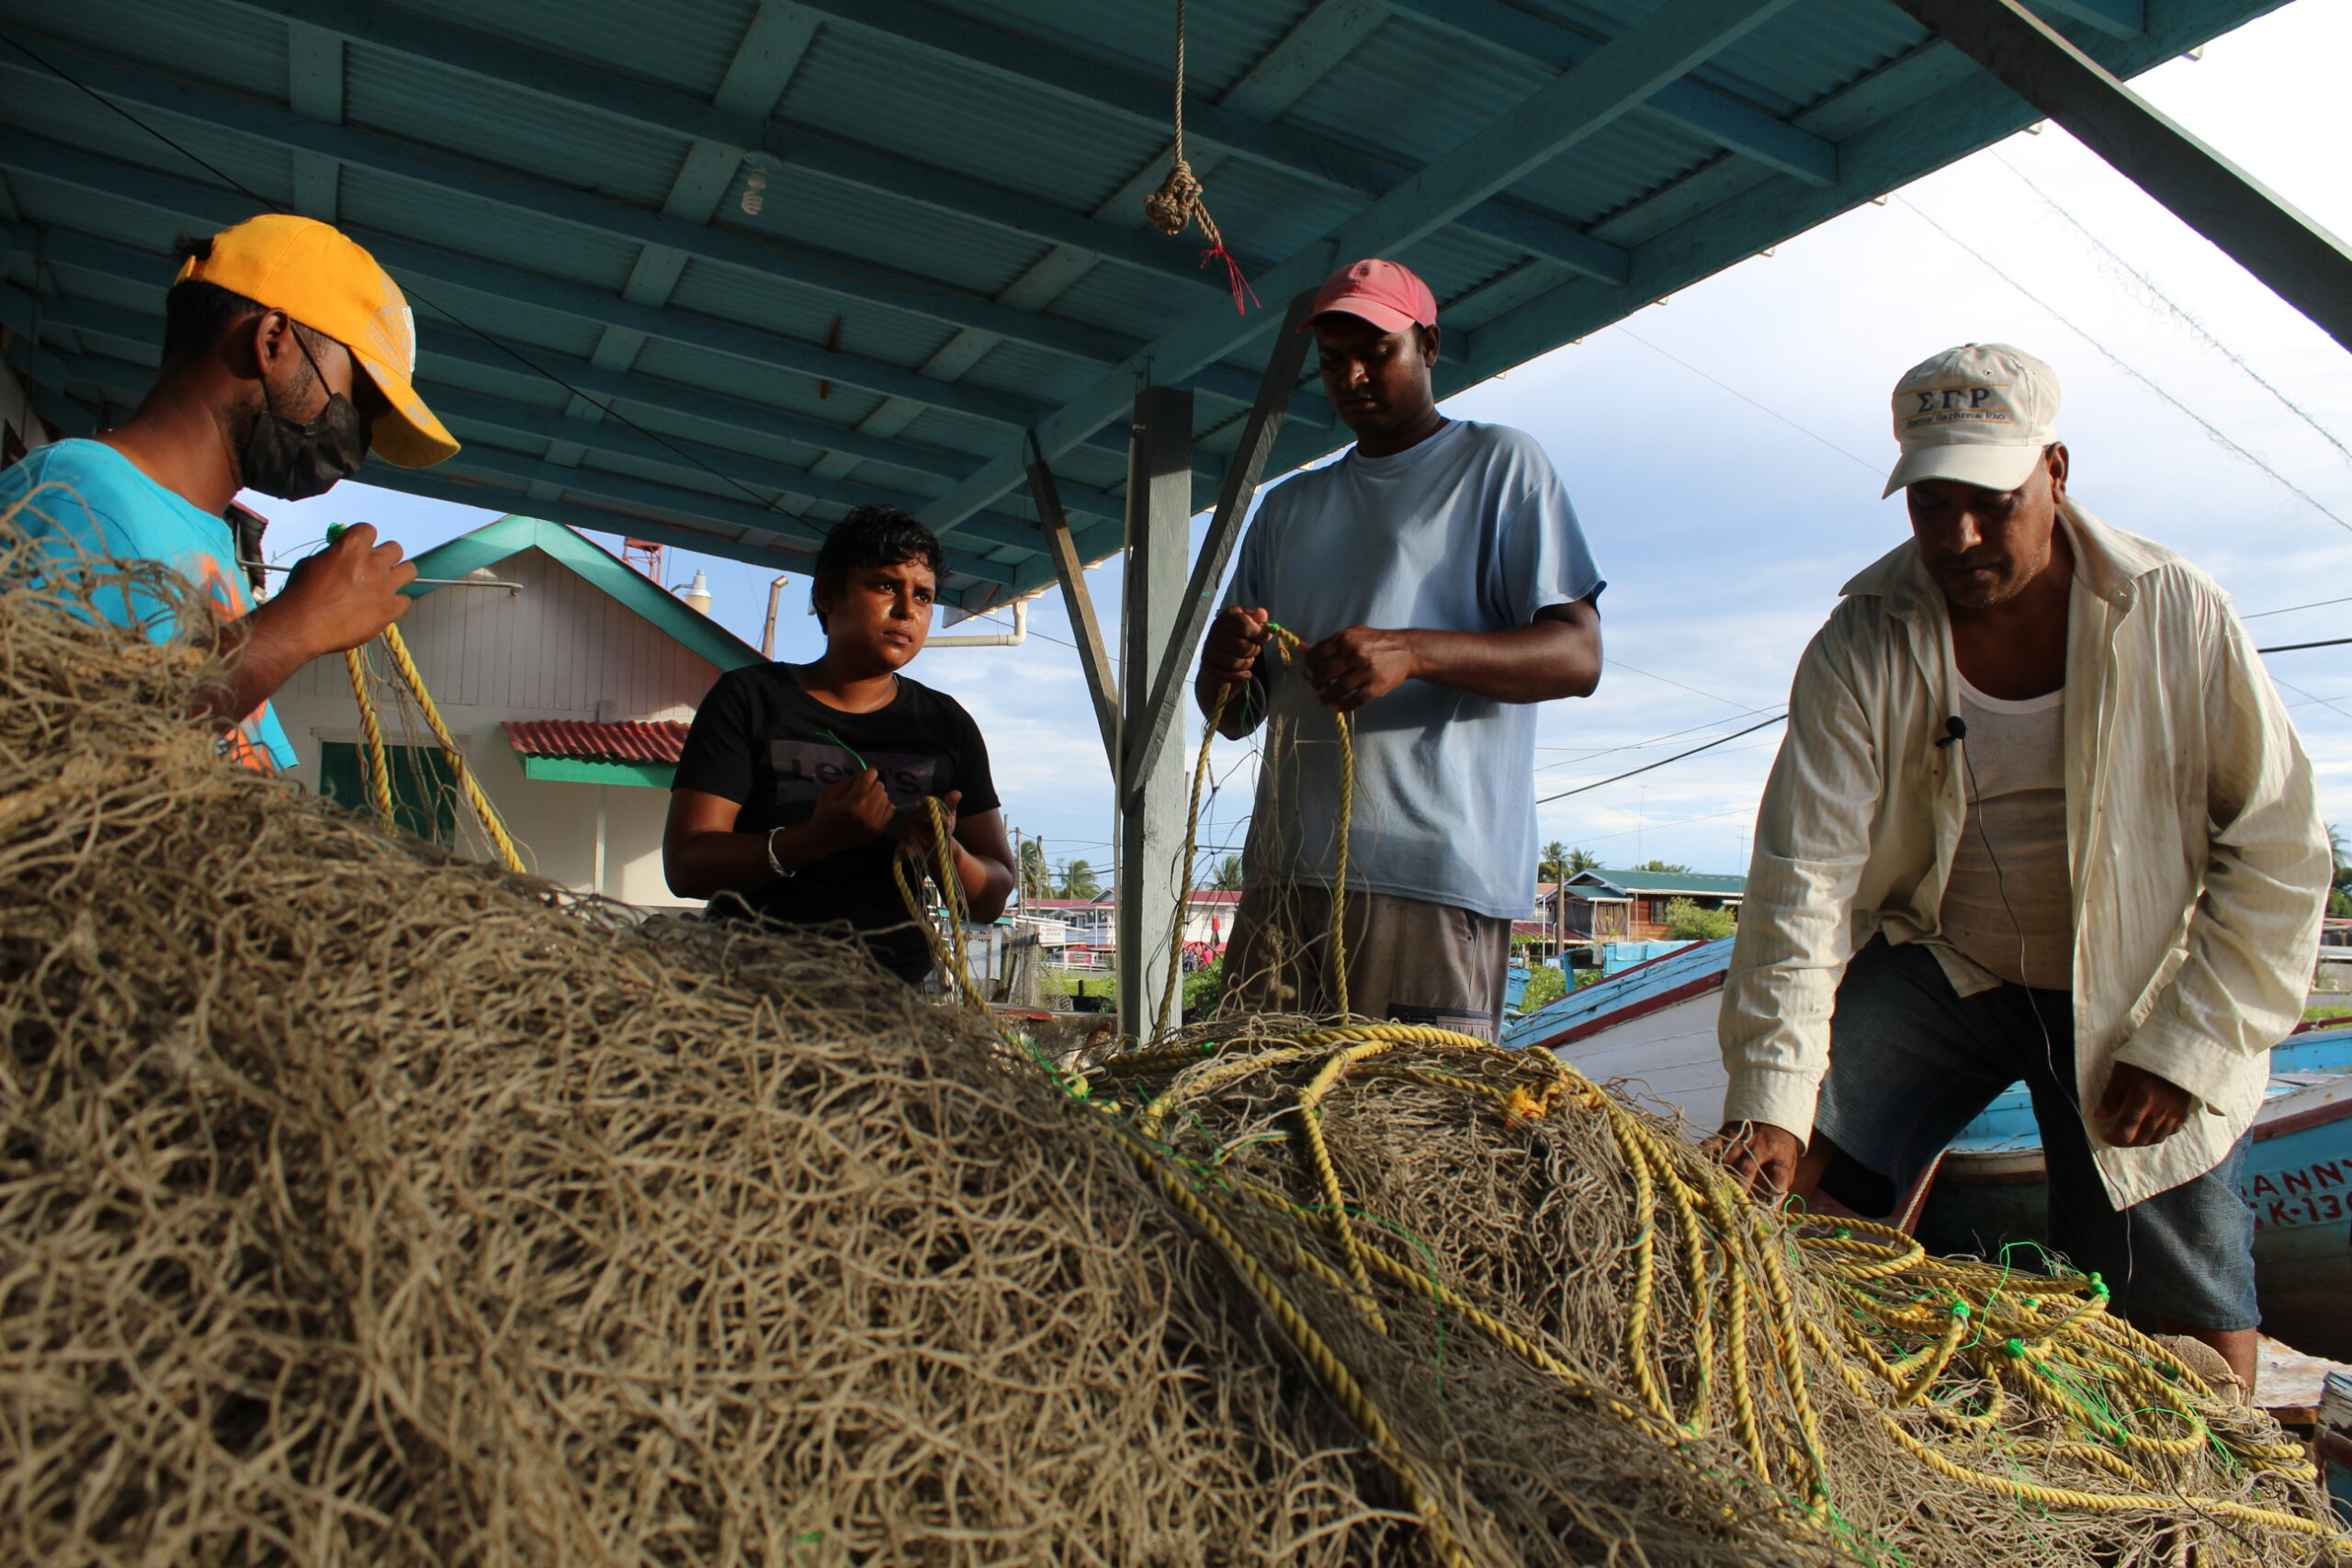 At No. 66 Village: Seine workers doing part to support the fishing industry